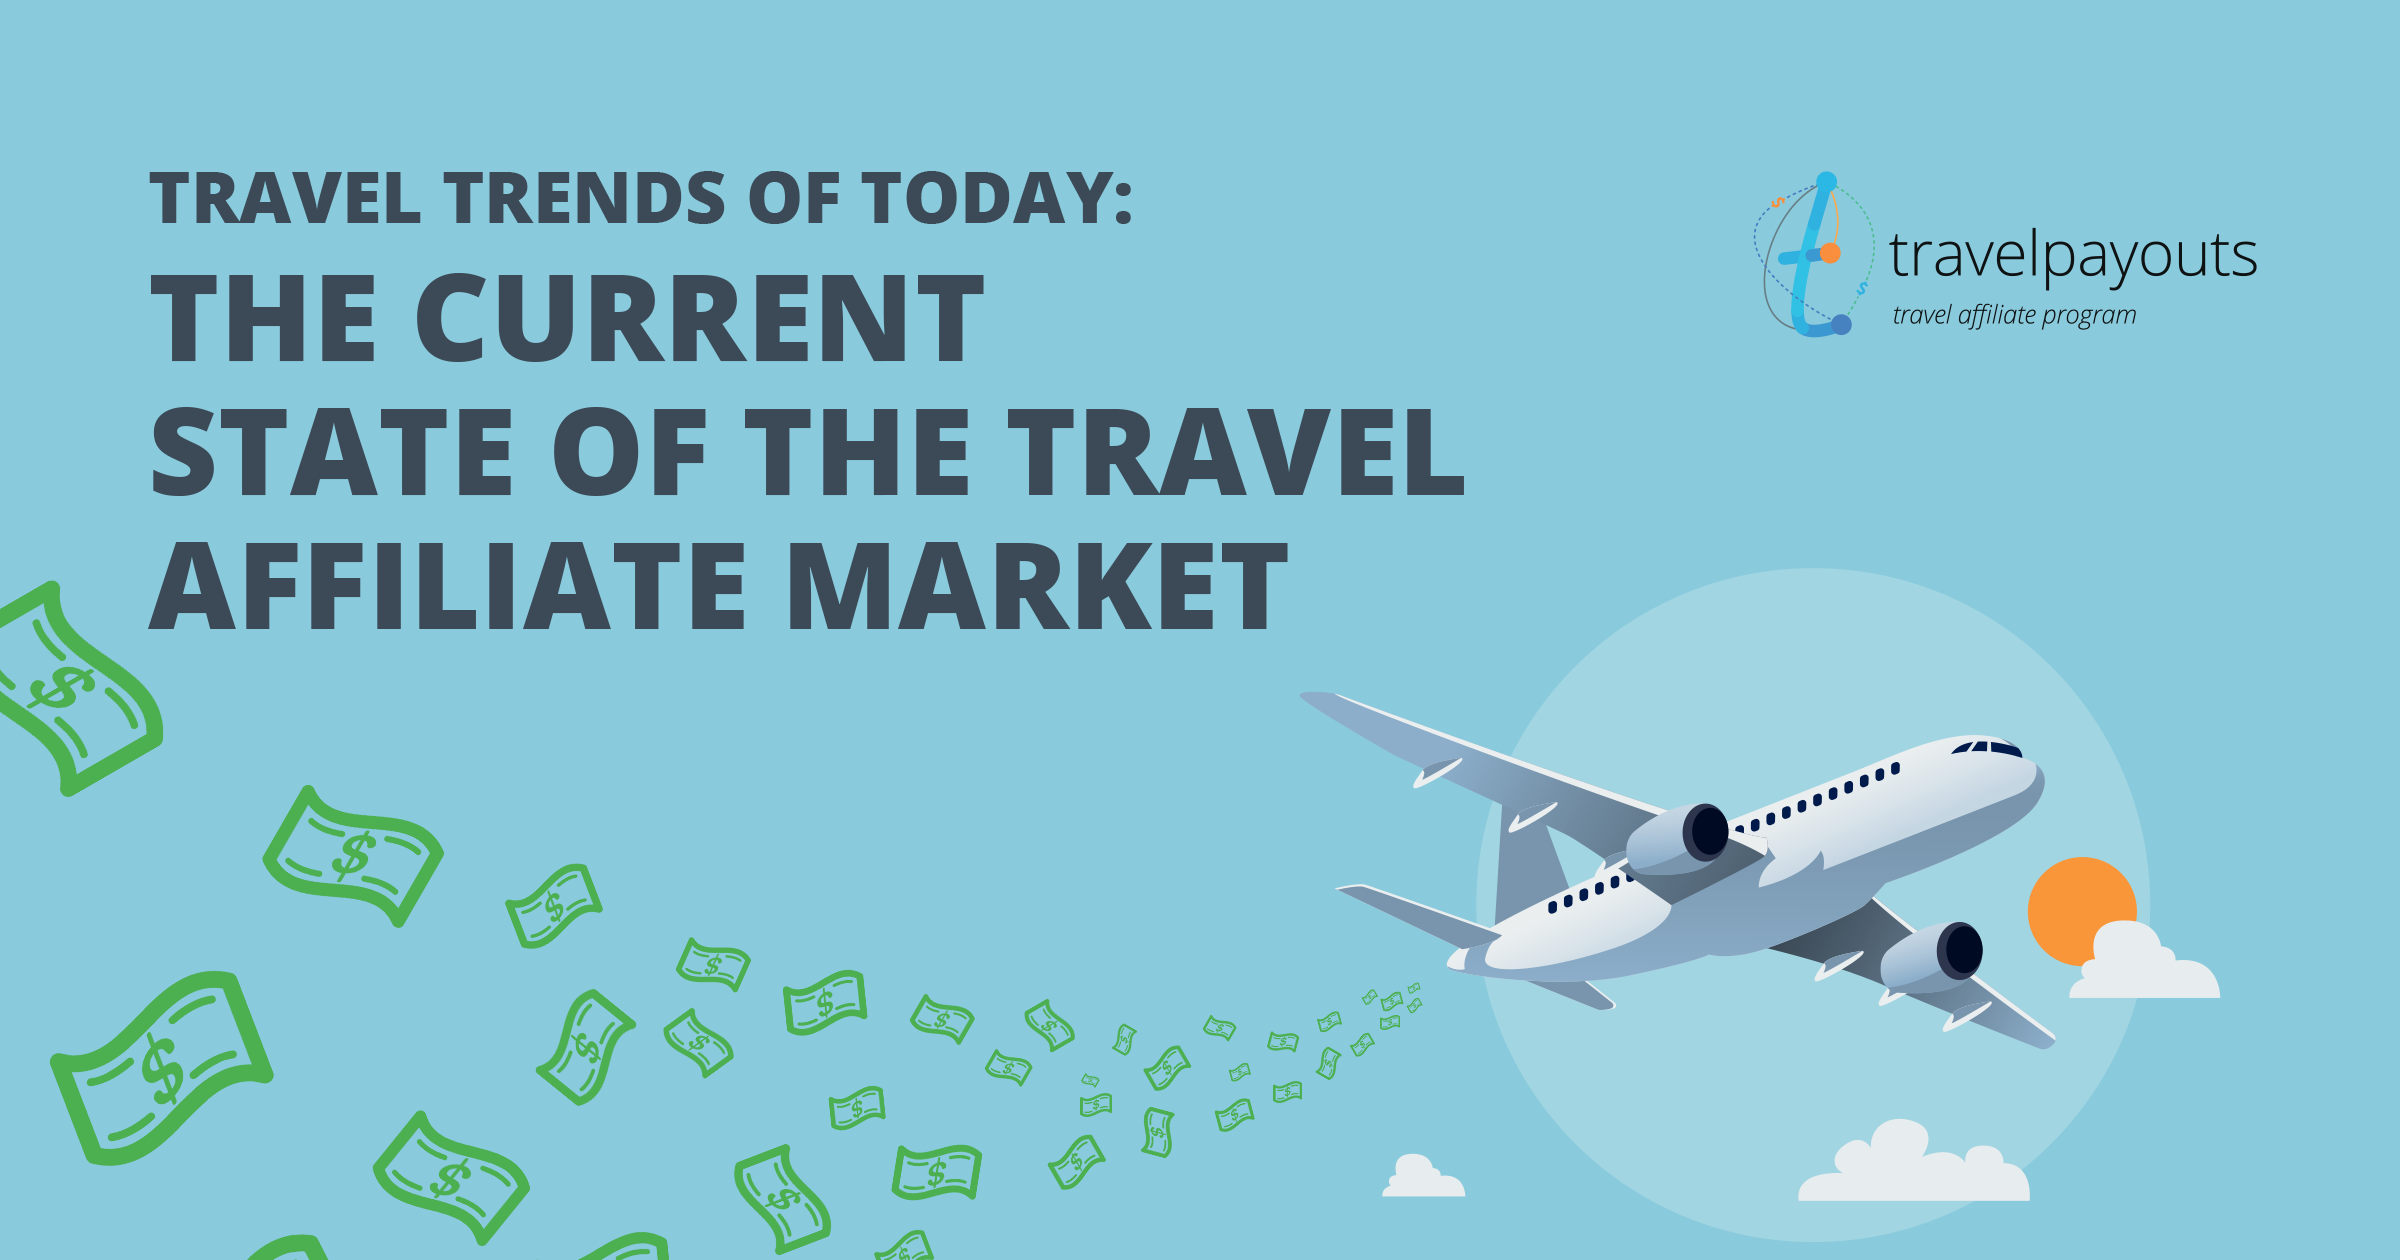 Travel Trends of Today: The Current State of the Travel Affiliate Market